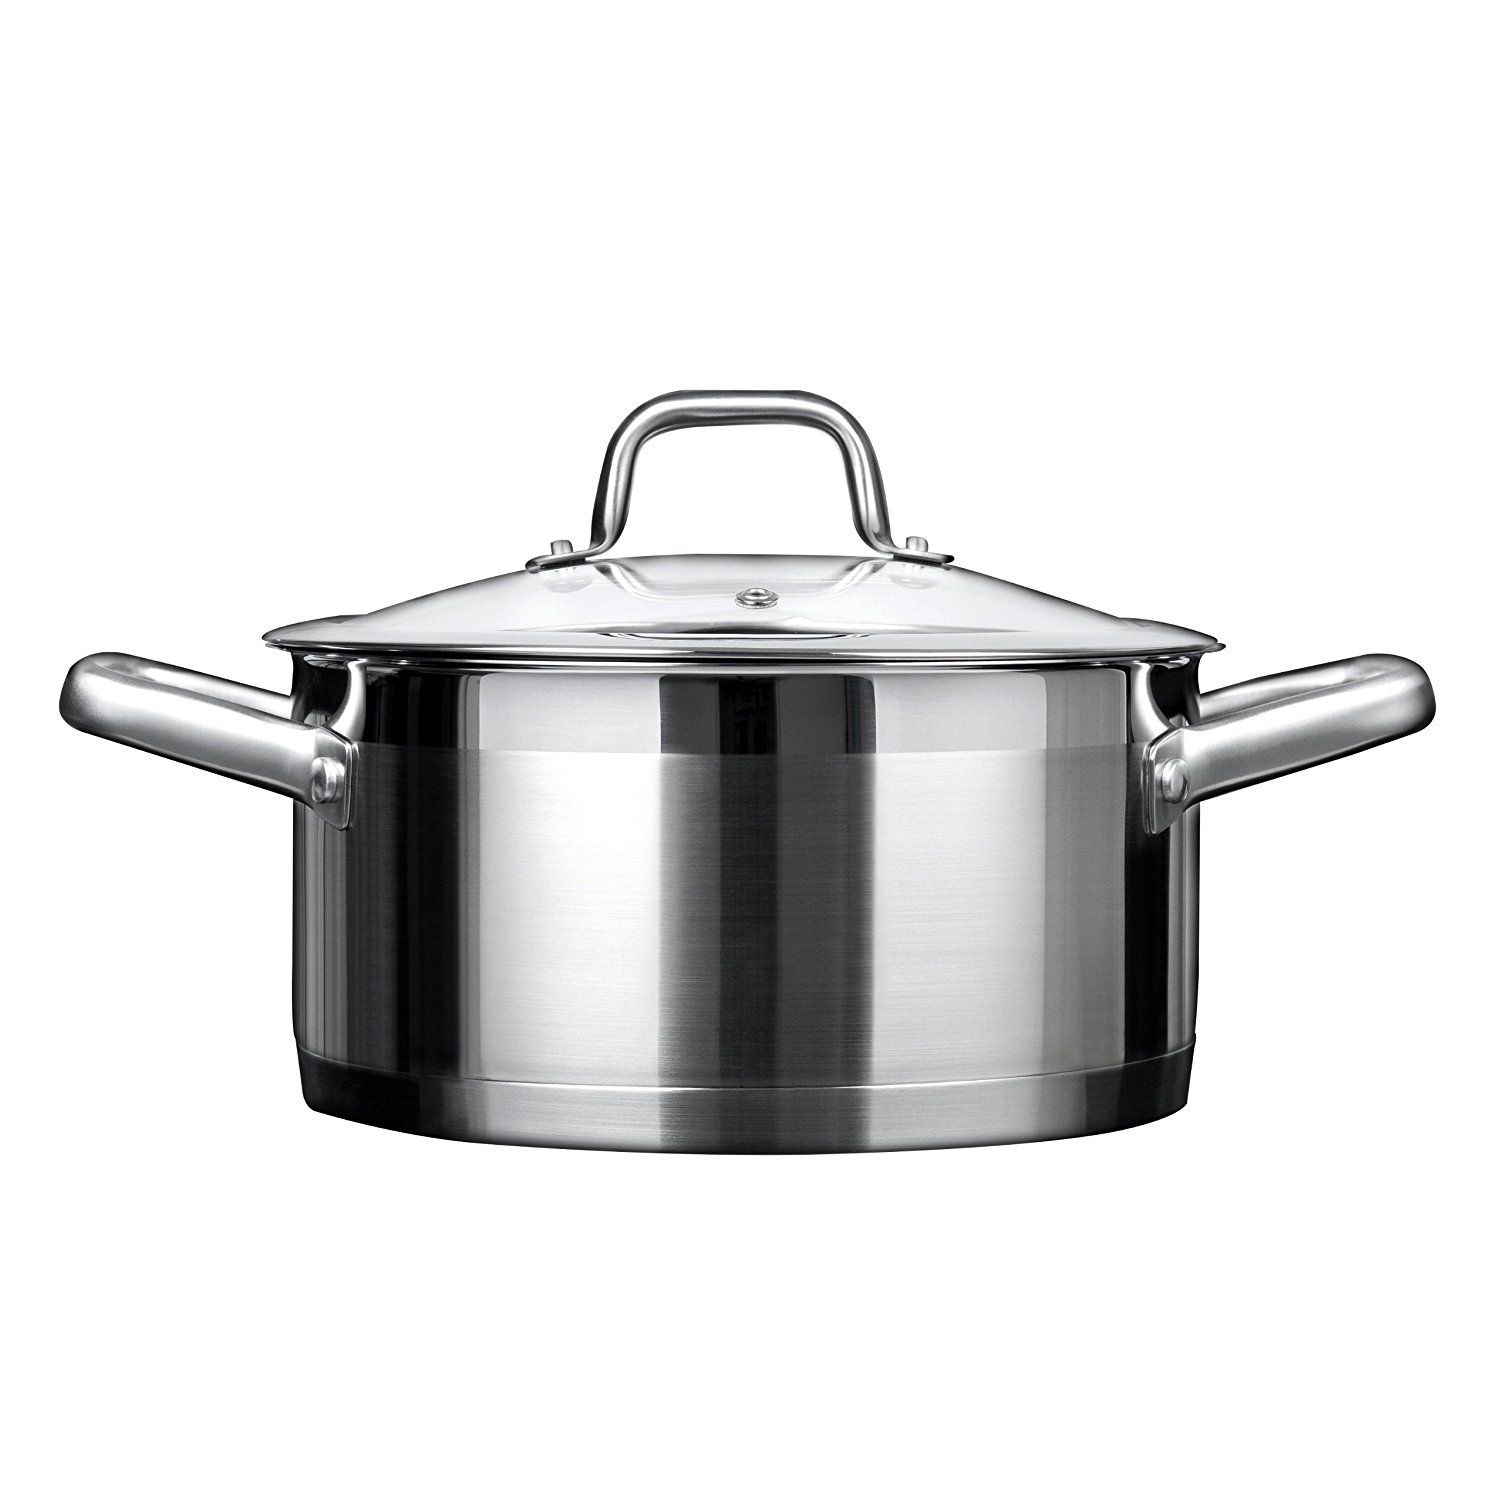 Duxtop Professional Stainless Steel Cookware Induction Ready Impact Bonded Technology 4 2qt Casser Stainless Steel Cookware Induction Cookware Ceramic Cooktop